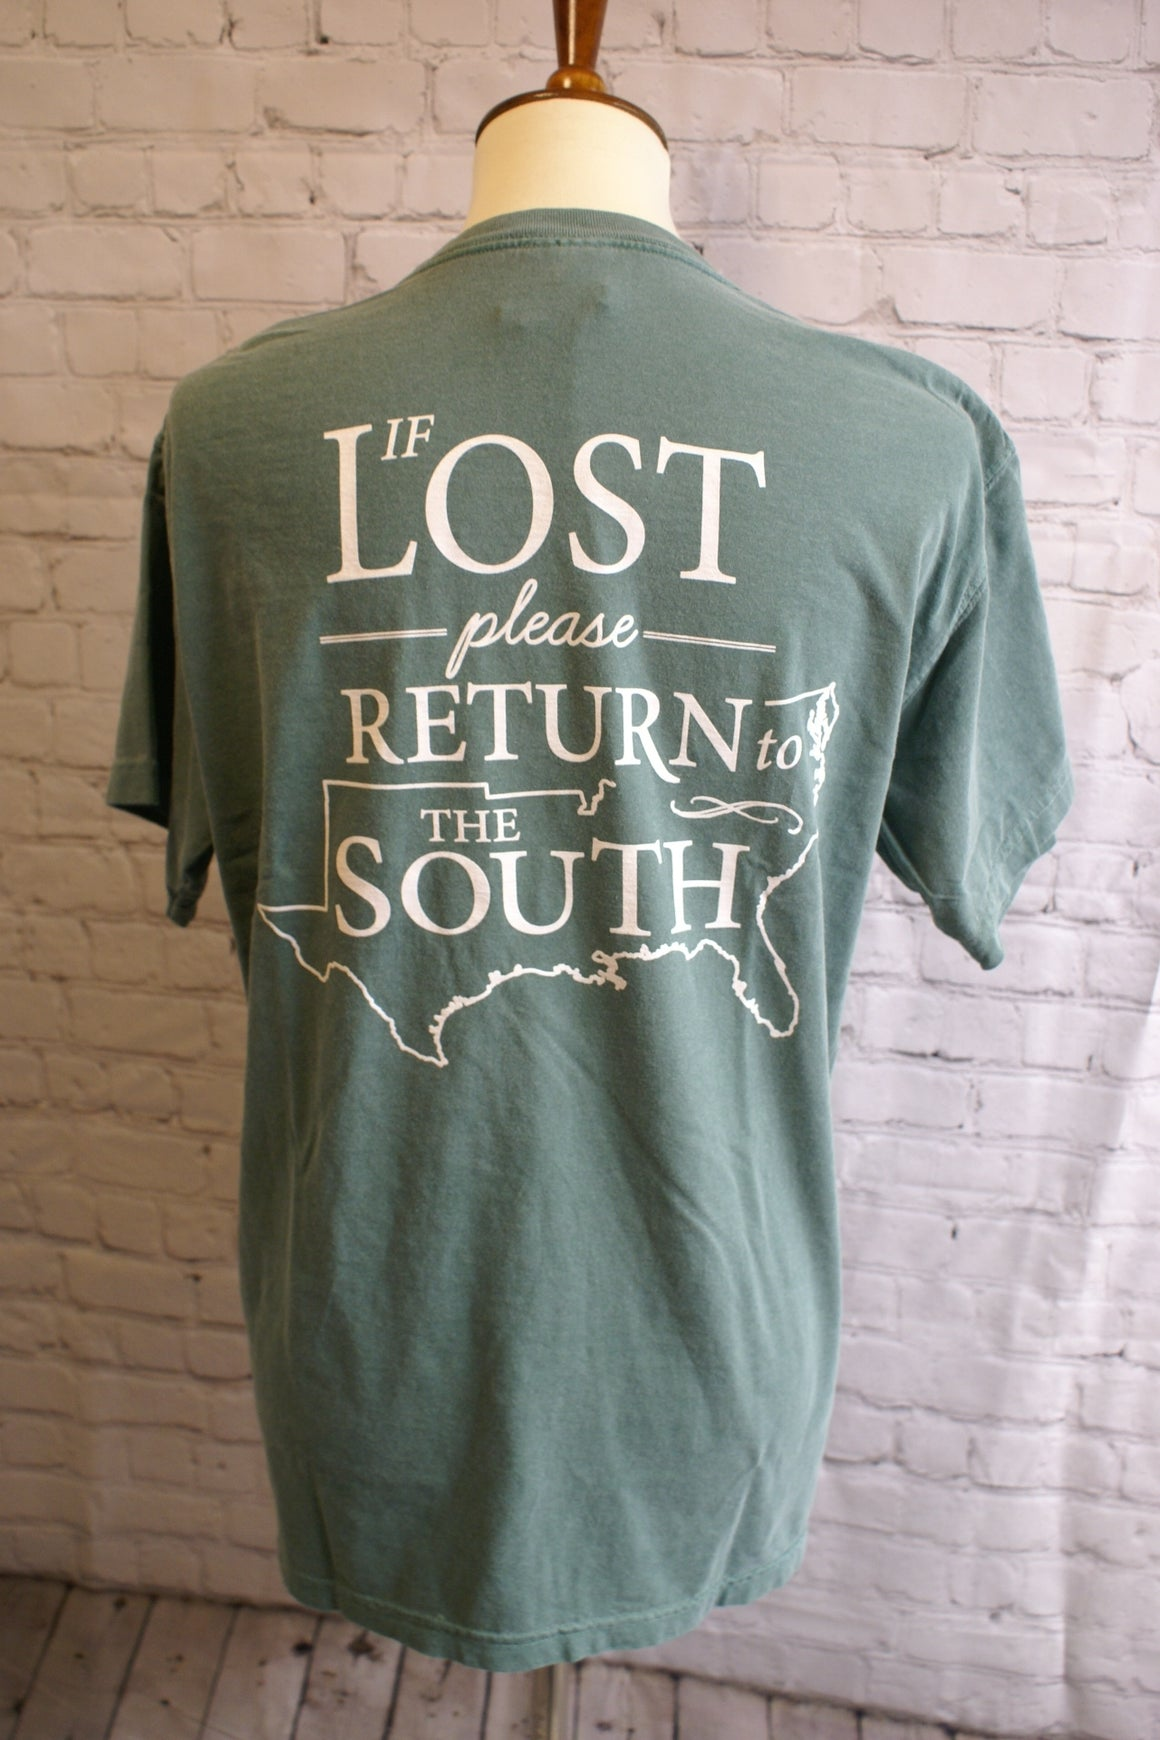 Return to the South shirt